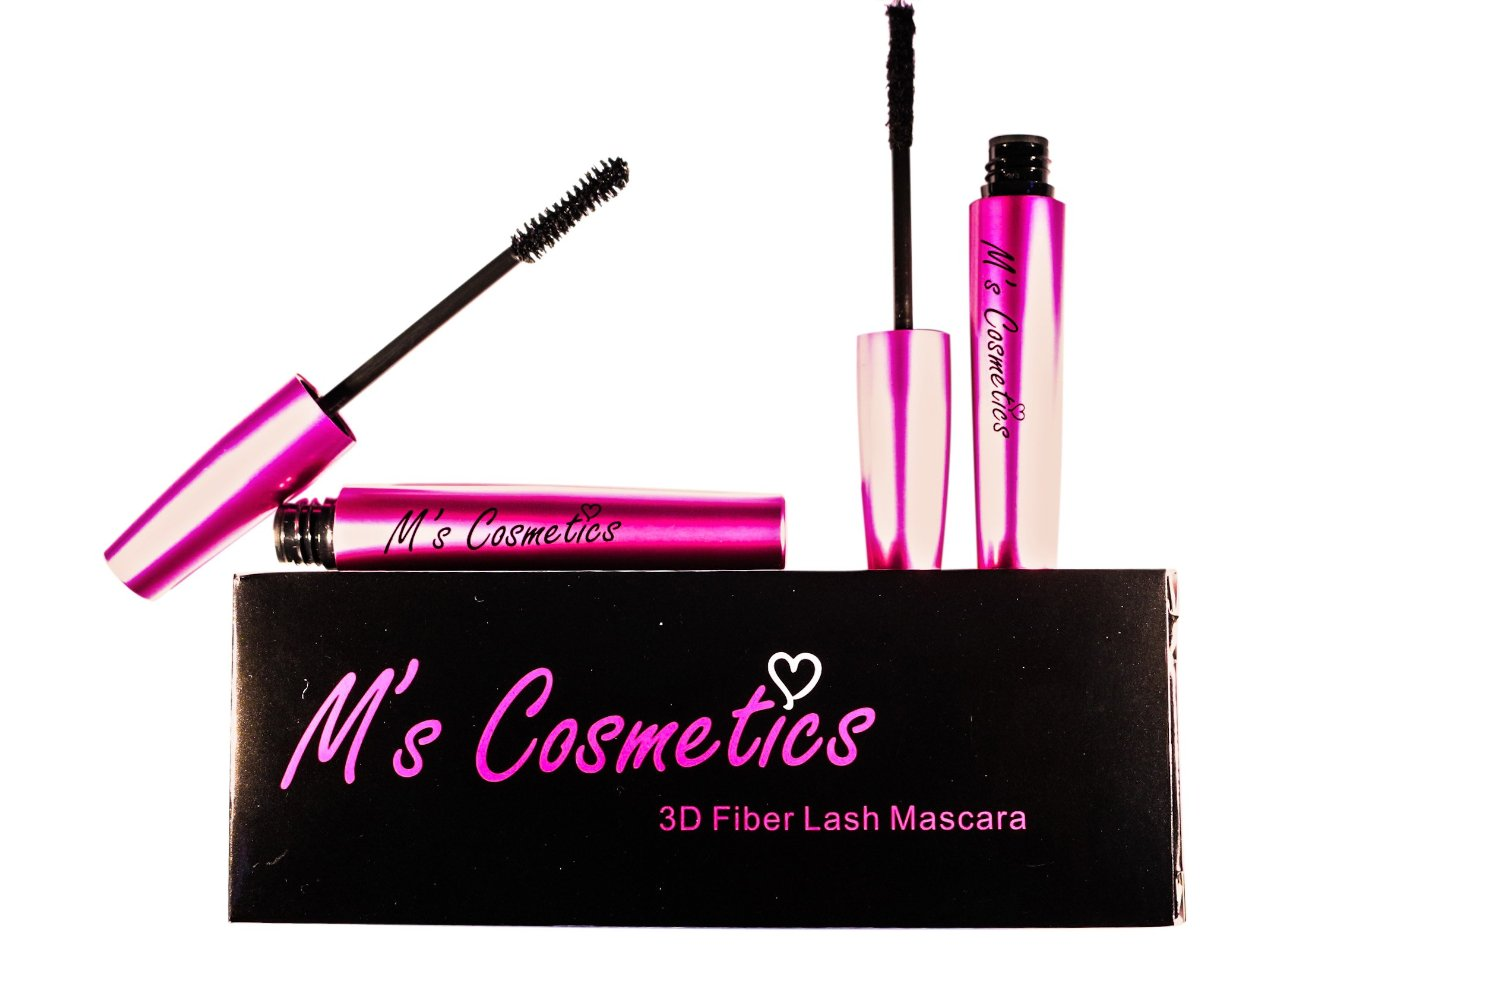 3D Fiber Lash Mascara By MsCosmetics - 100% natural Fibers- Get Thick, Long, Voluminous Effect- Up To 400% Volume Increase- Replace Fake Lashes- Waterproof-Long Lasting- Magnetic Look- Impressive Eyes